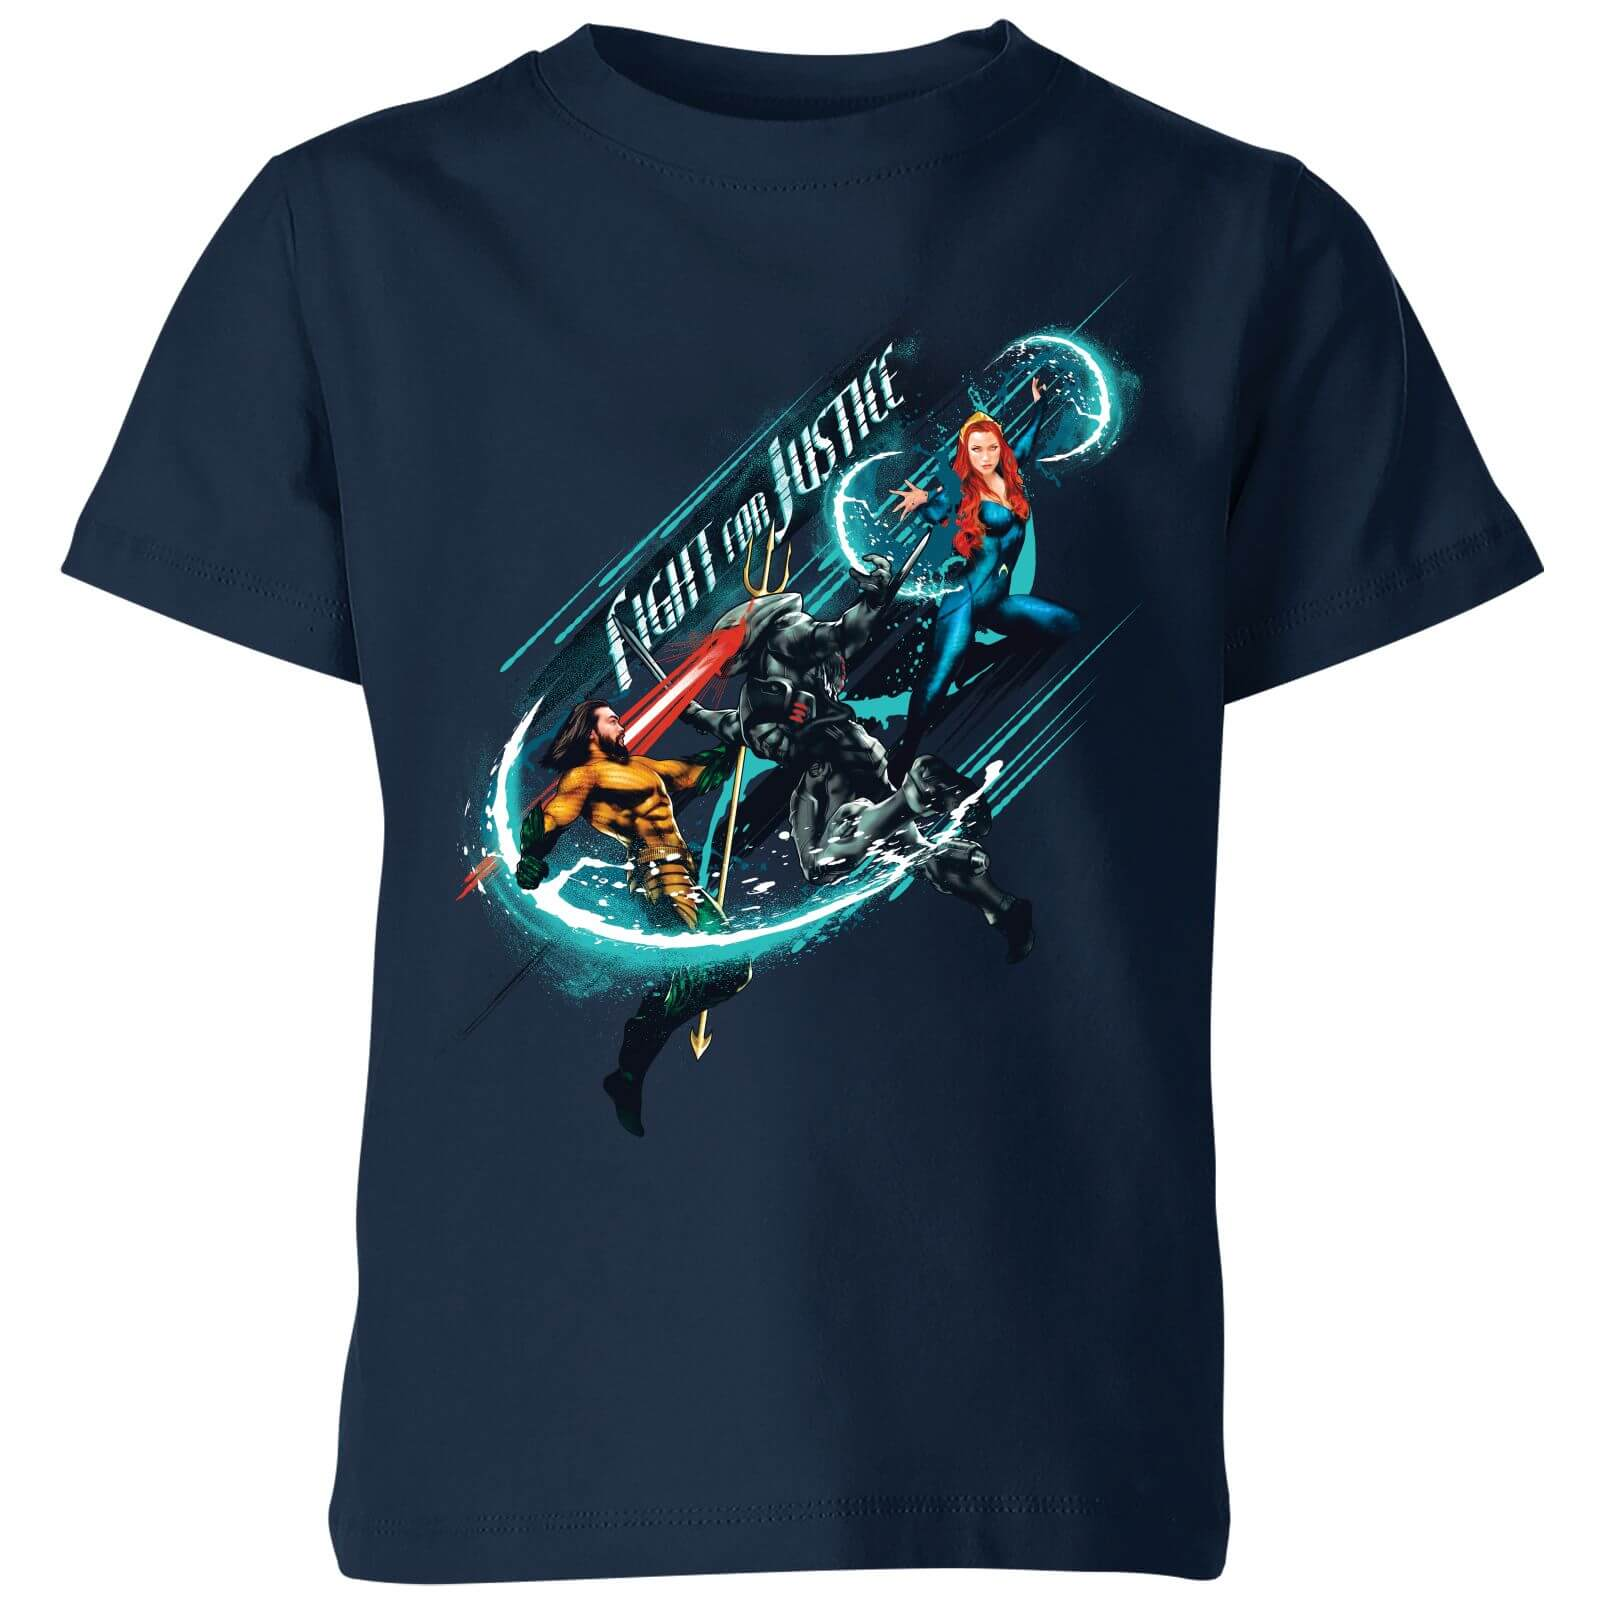 a6702e92ace Aquaman Fight for Justice Kids' T-Shirt - Navy Clothing | Zavvi